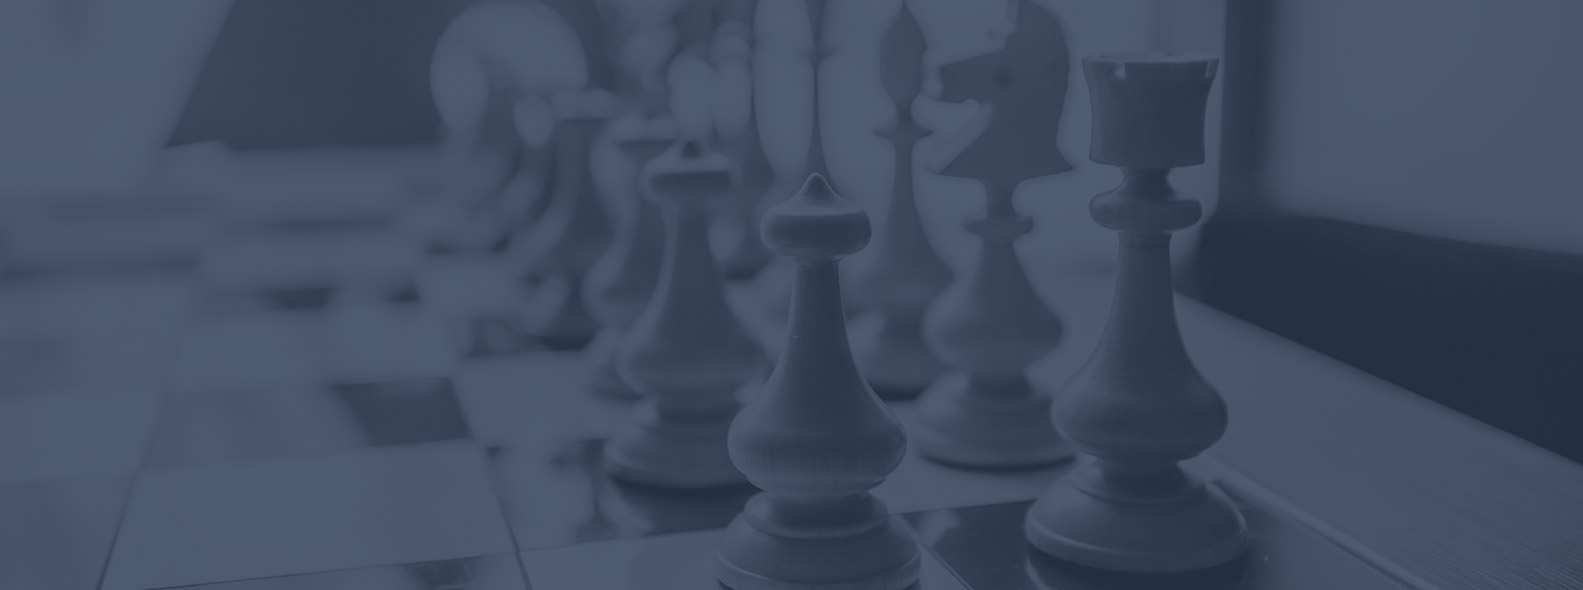 Chess pieces on a chess board representing making your strategic move with due diligence services